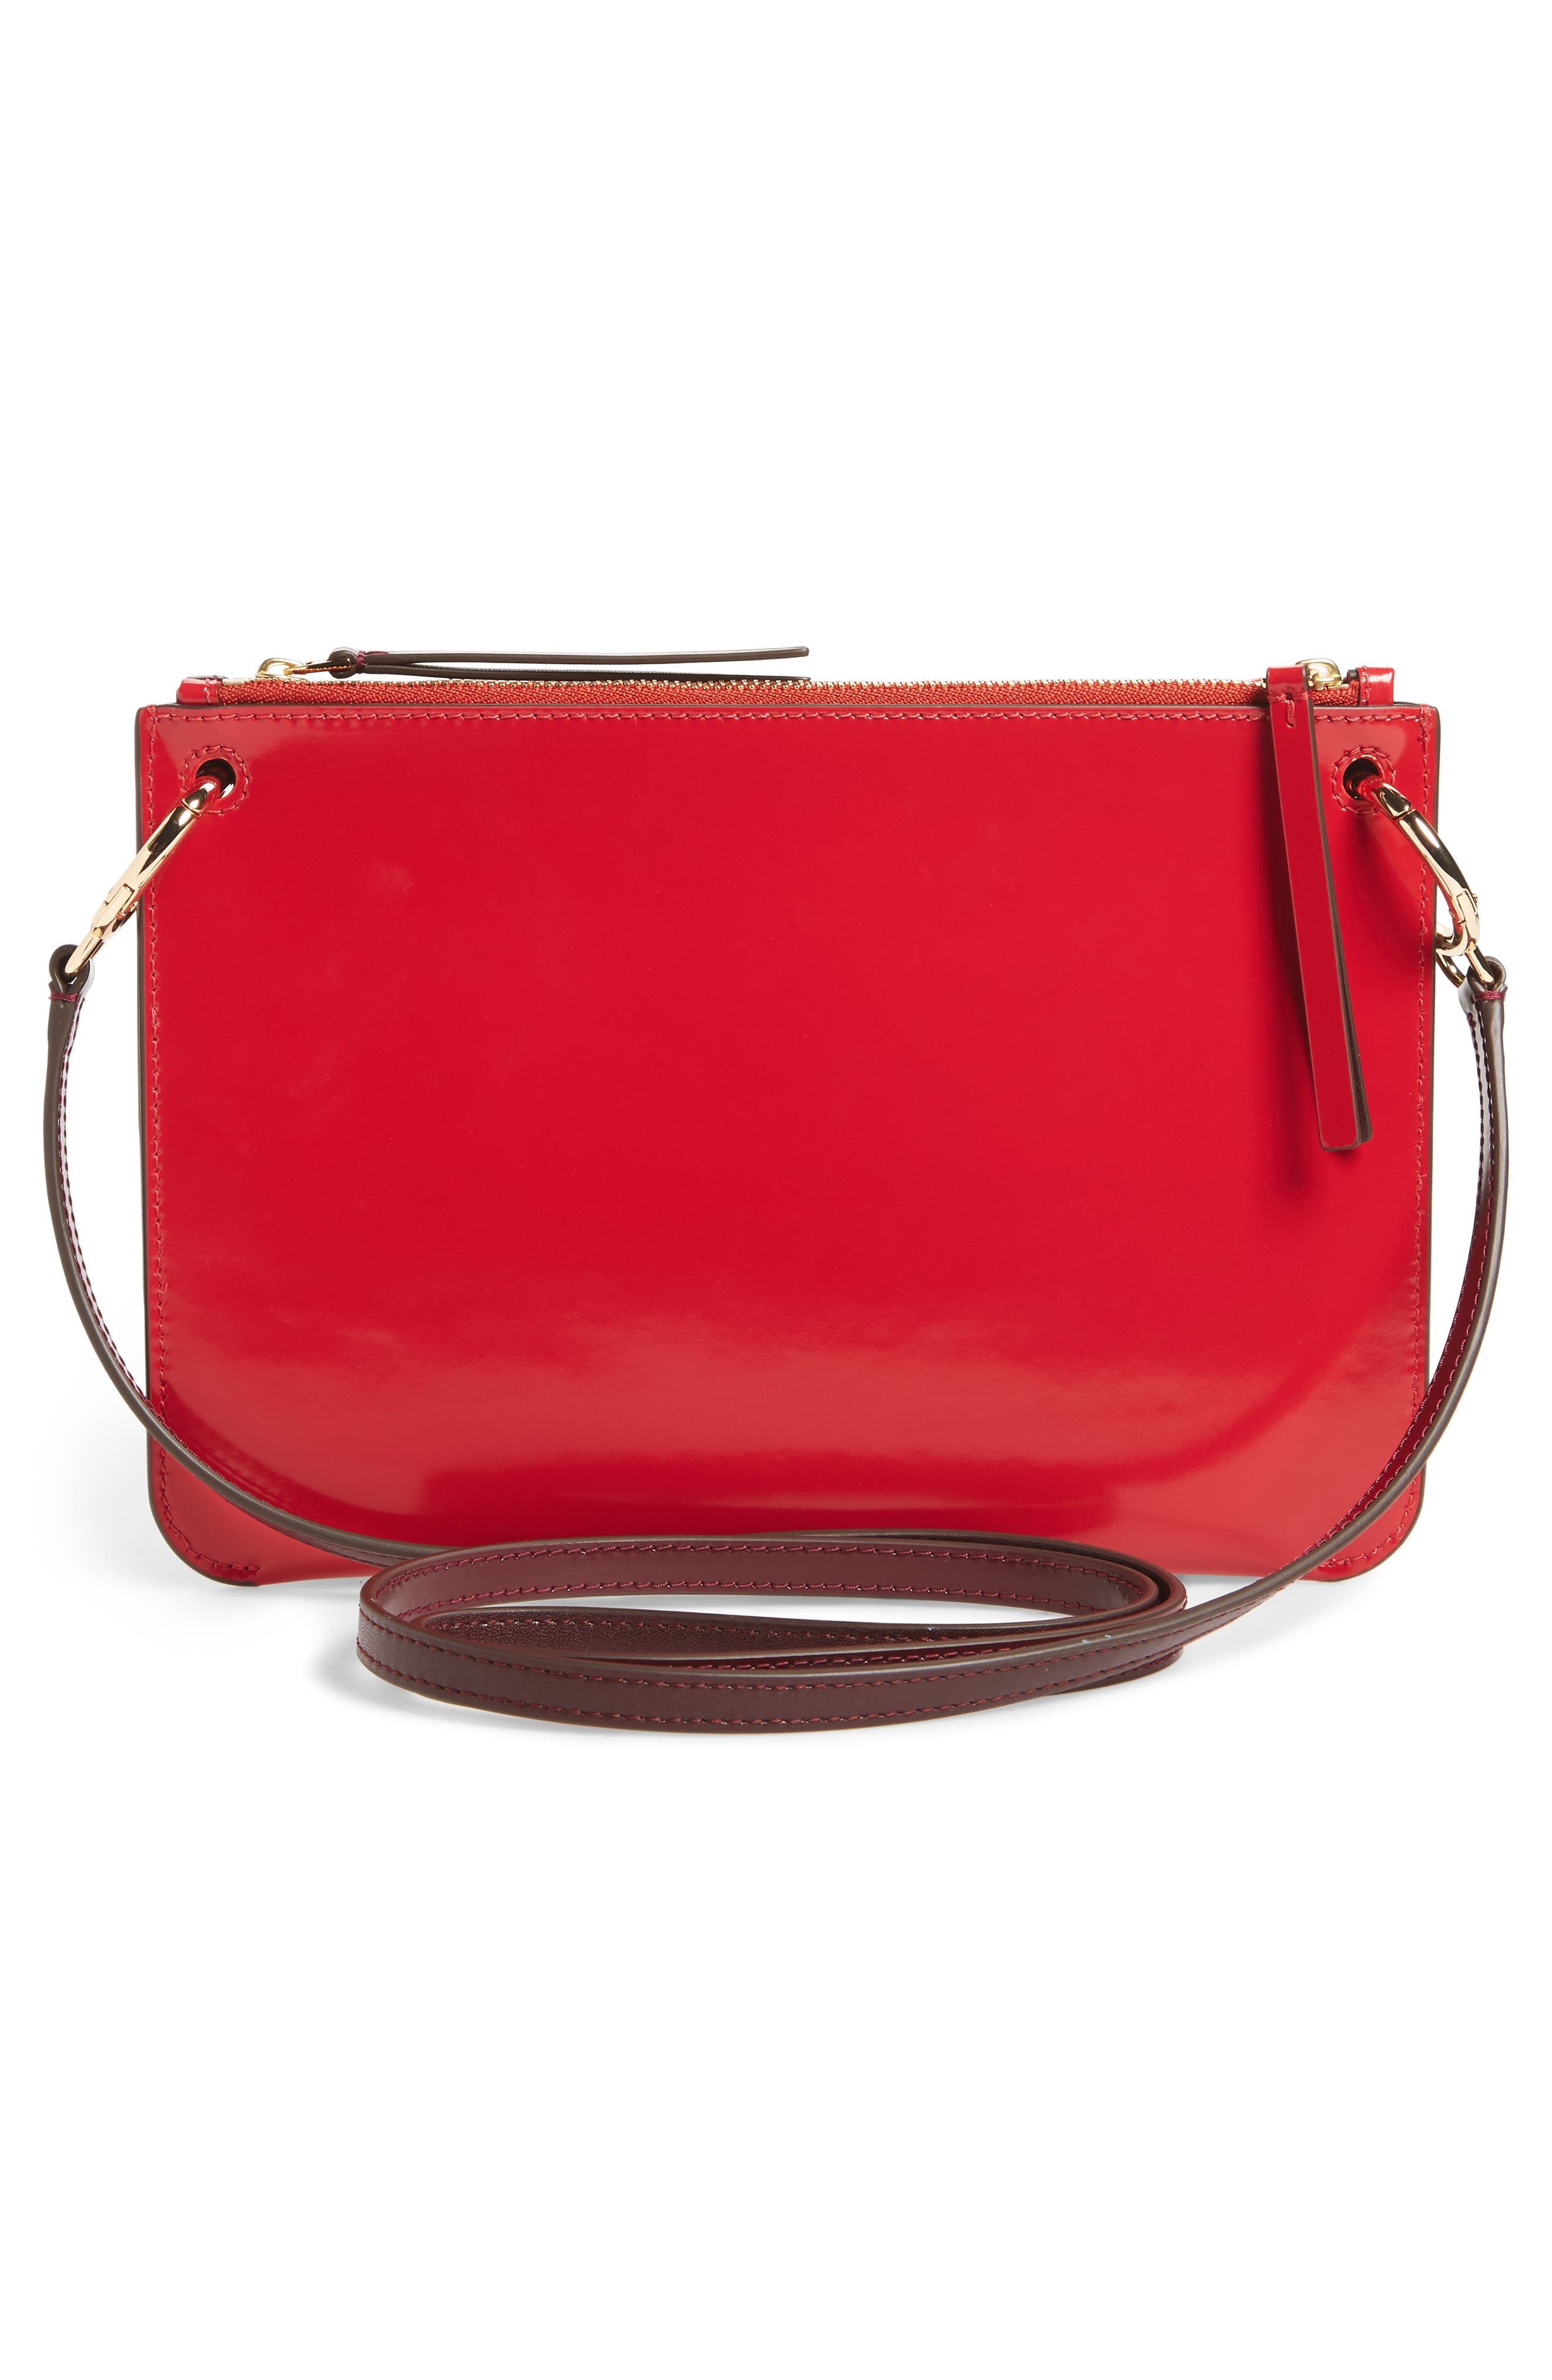 Alternate Image 3  - Tory Burch Leather Accordion Crossbody Bag